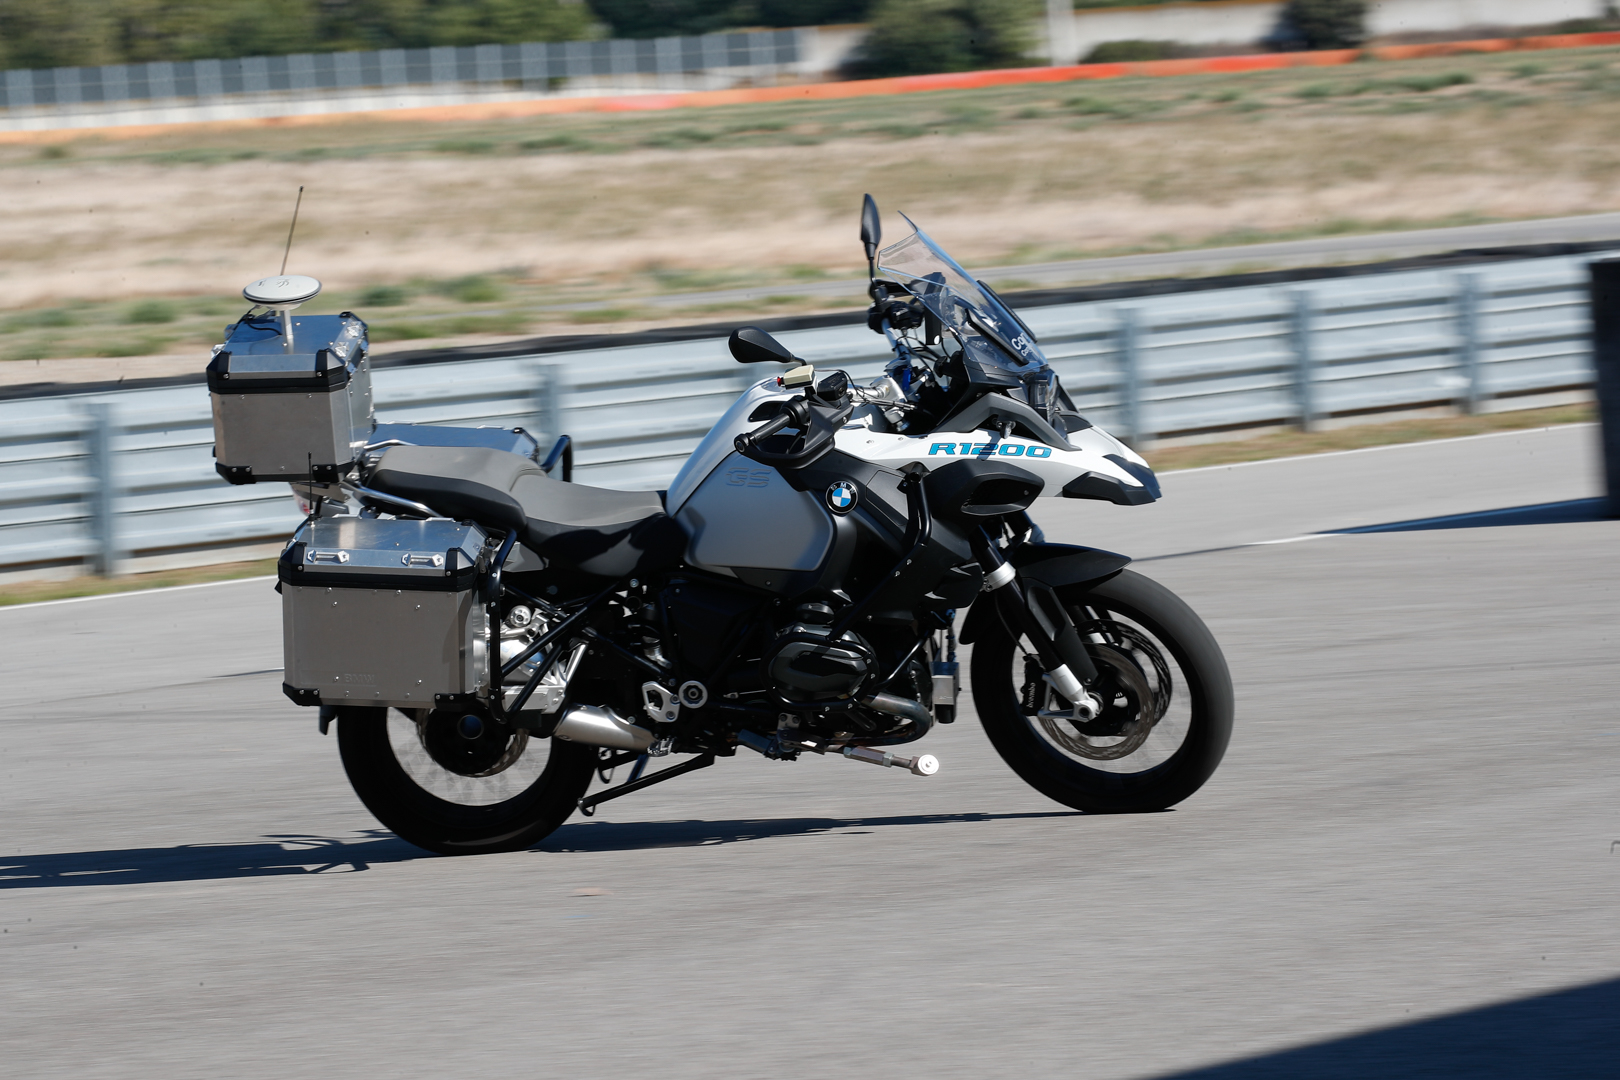 BMW taught the bike to ride without a driver